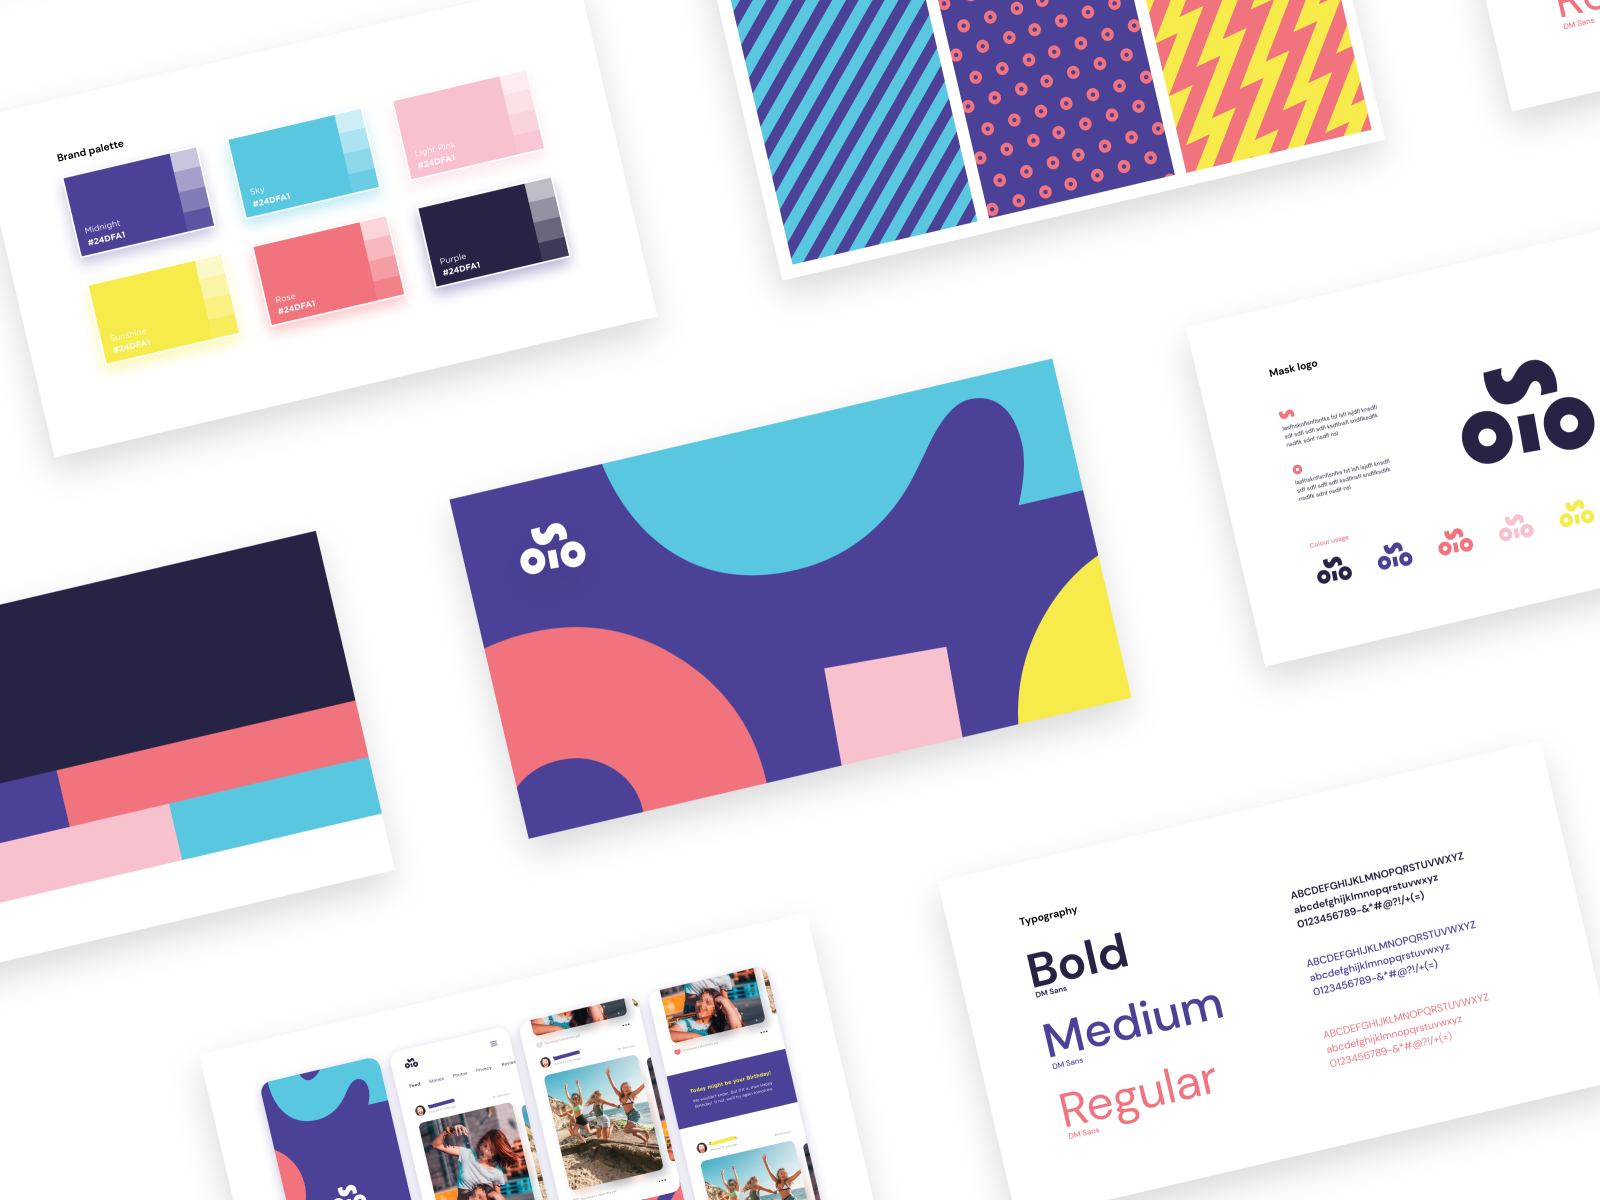 Brand book overview for Solo visual identity